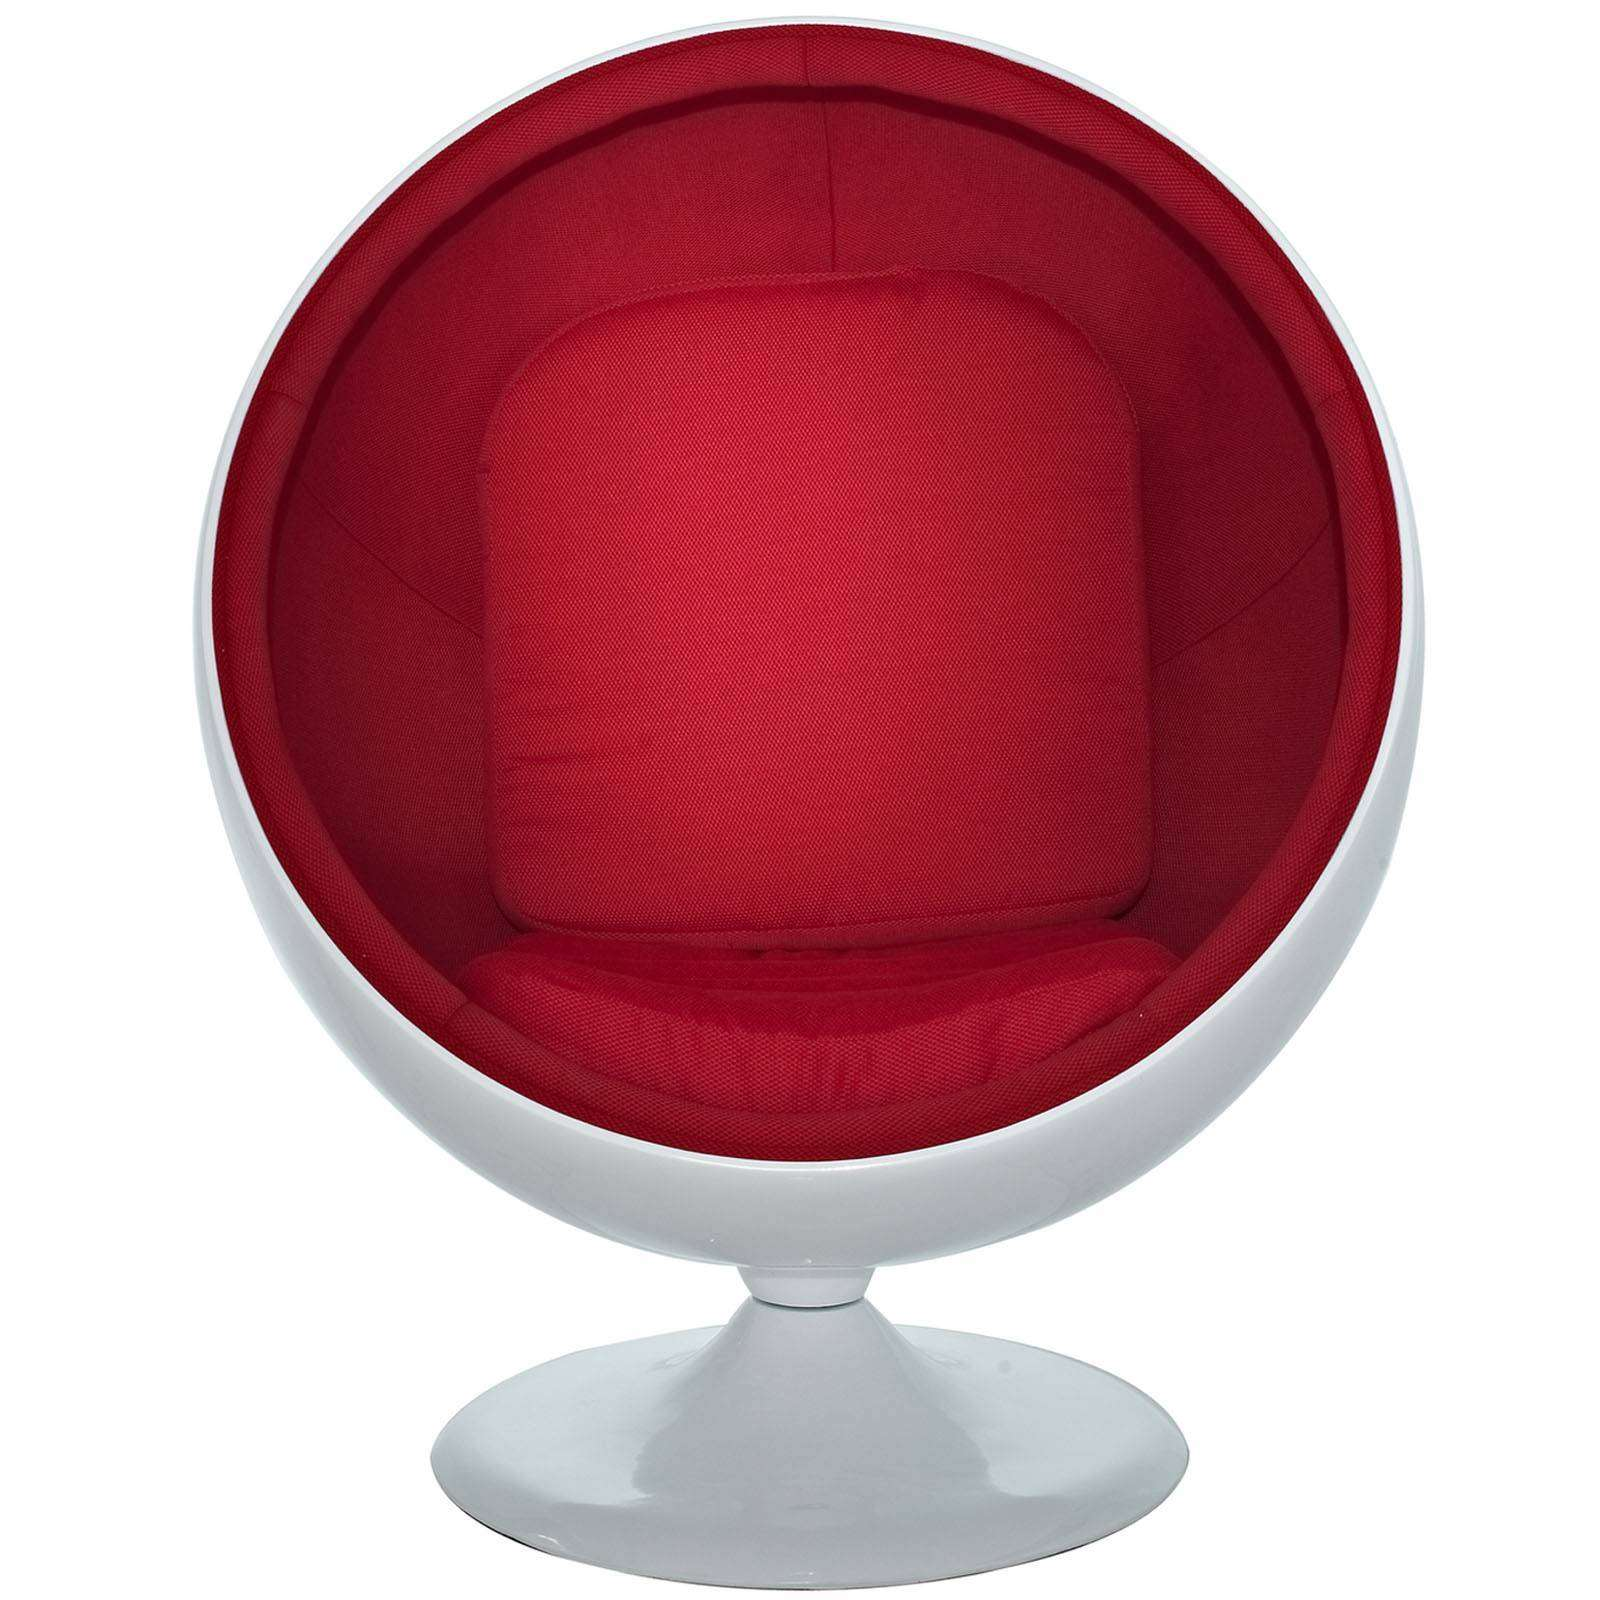 knoll spark chair review massage forum eero aarnio style ball